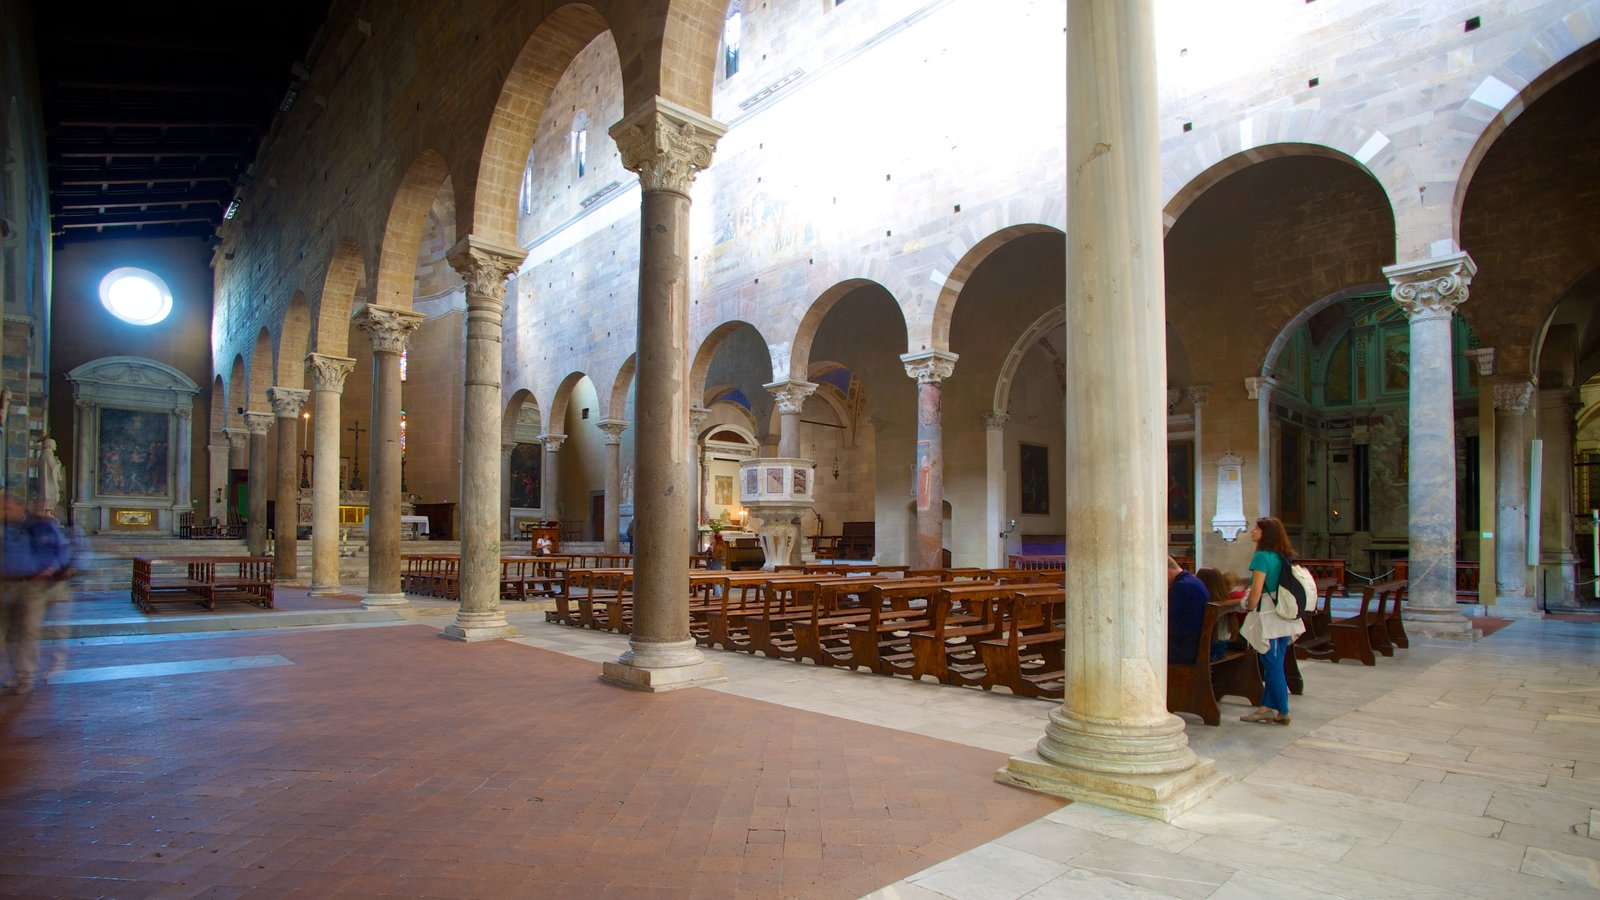 Basilica di San Frediano which includes heritage architecture, a church or cathedral and interior views